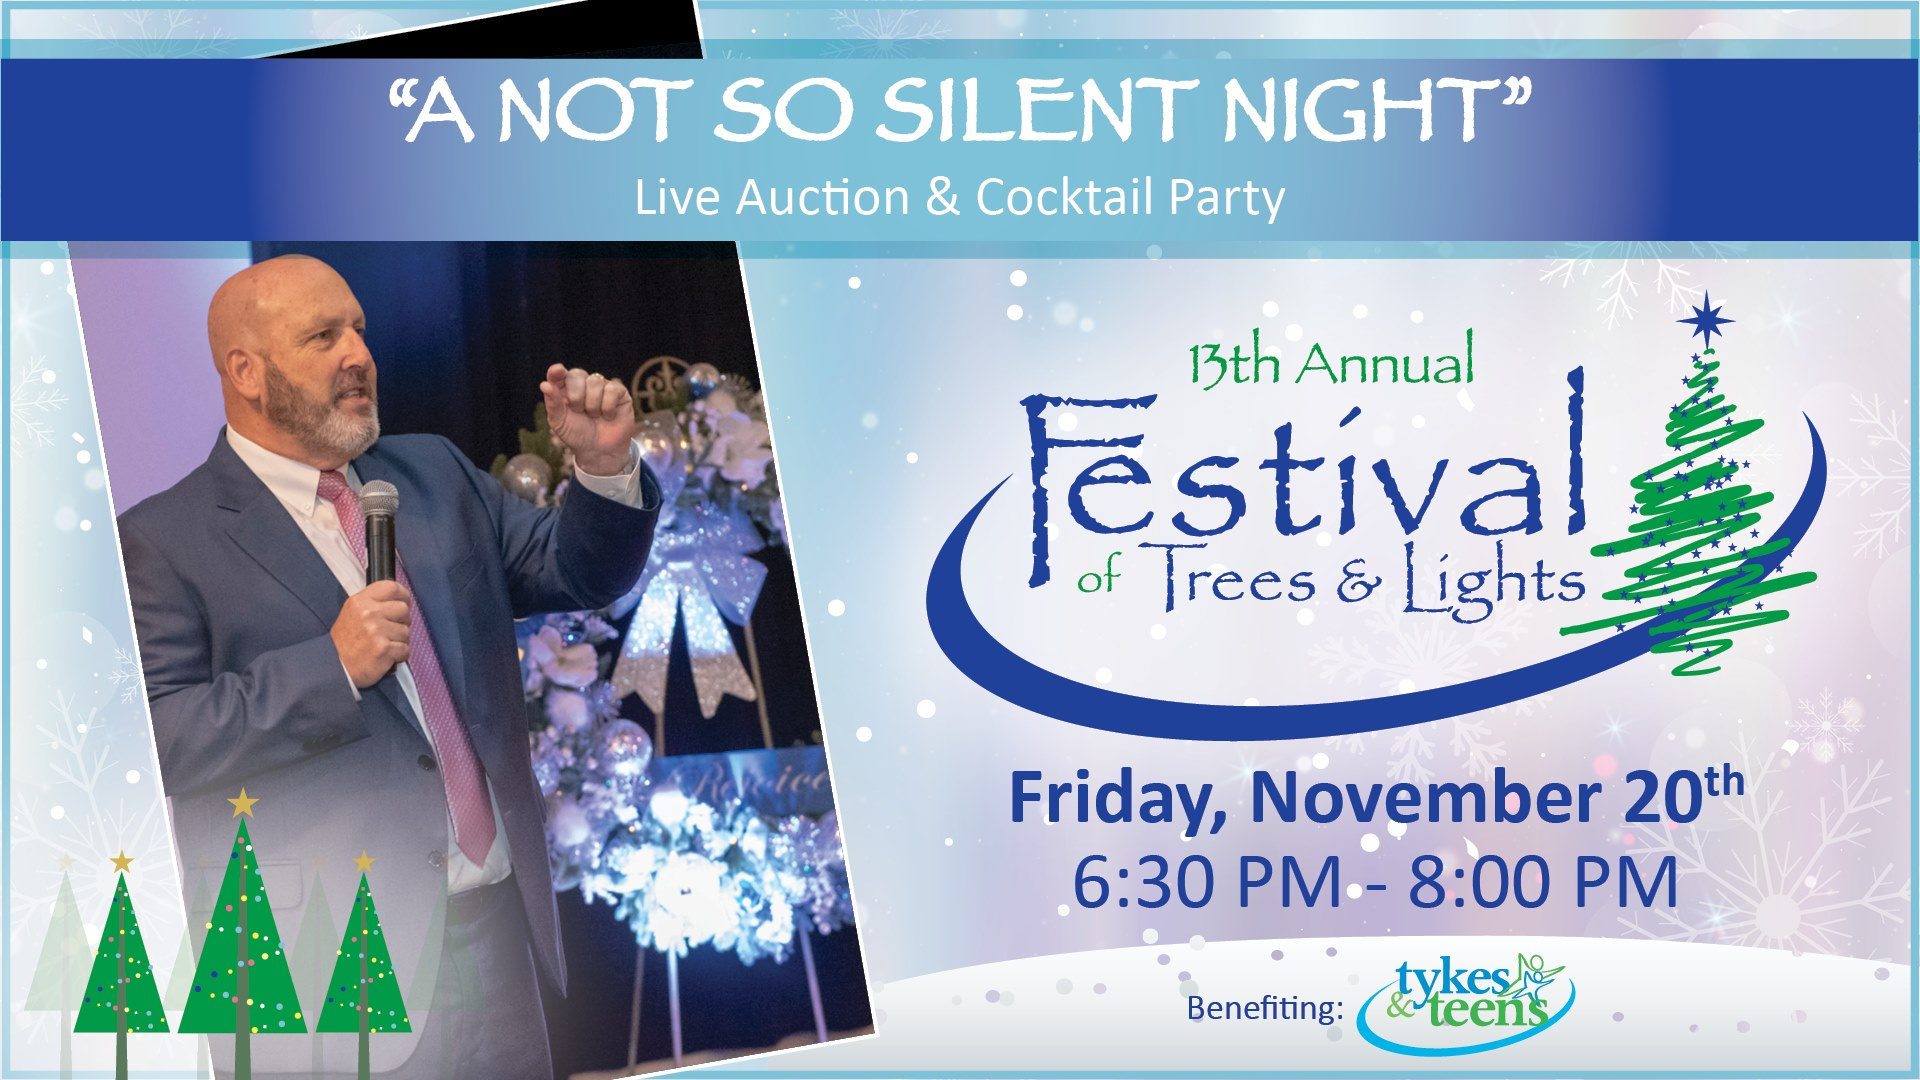 """Tykes & Teens """"A Not So Silent Night"""" Live Auction & Cocktail Party"""